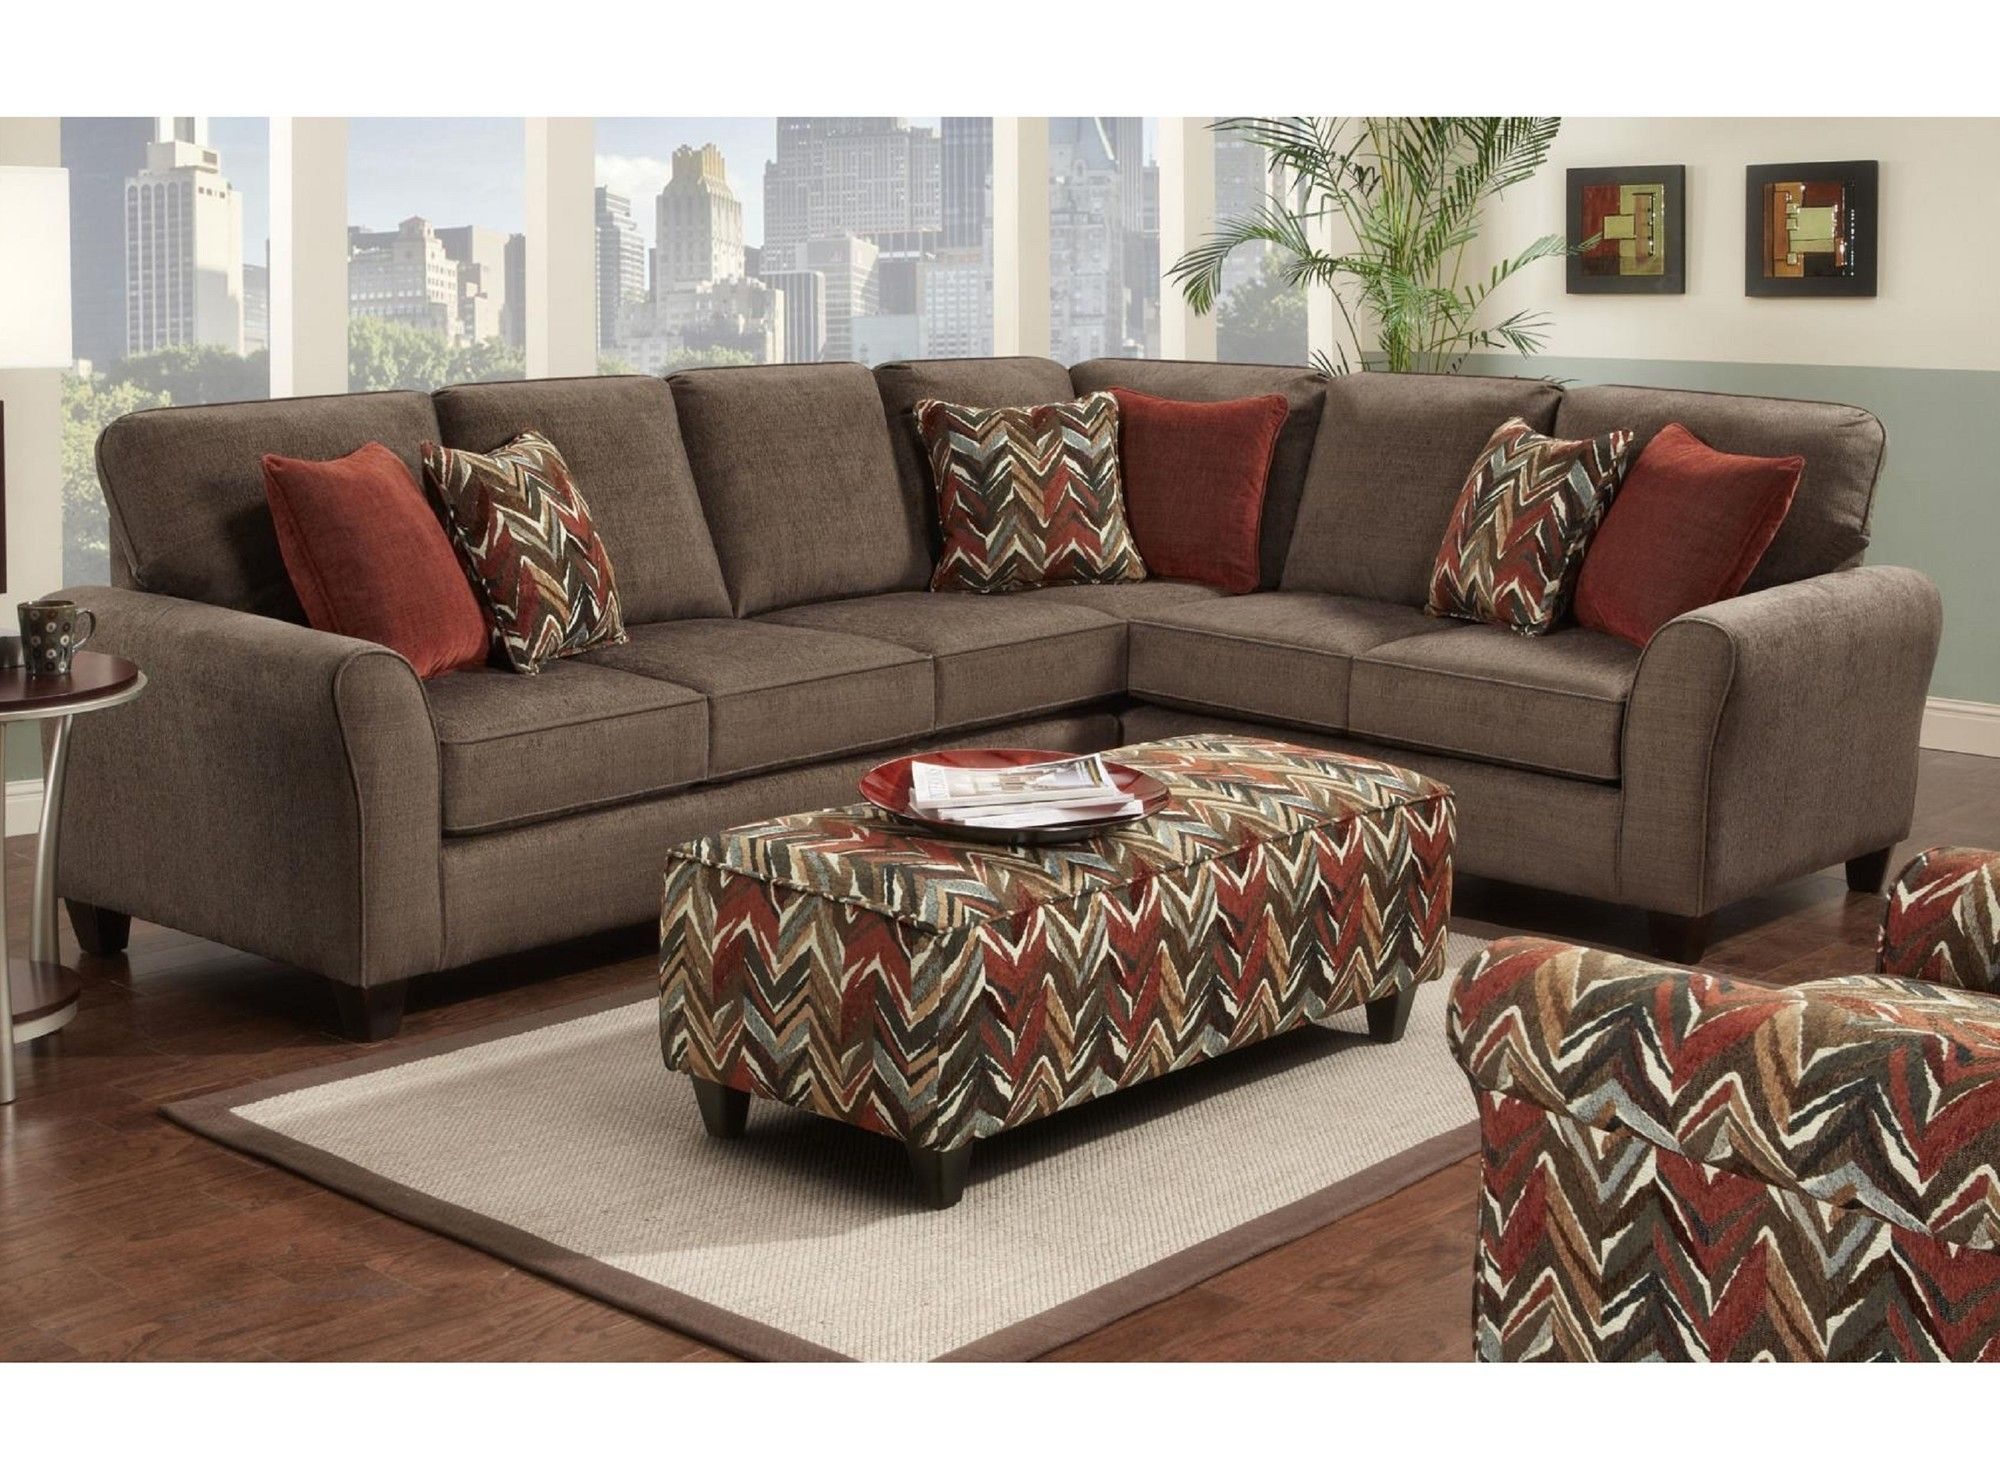 williamsburg sectional | products | pinterest | products